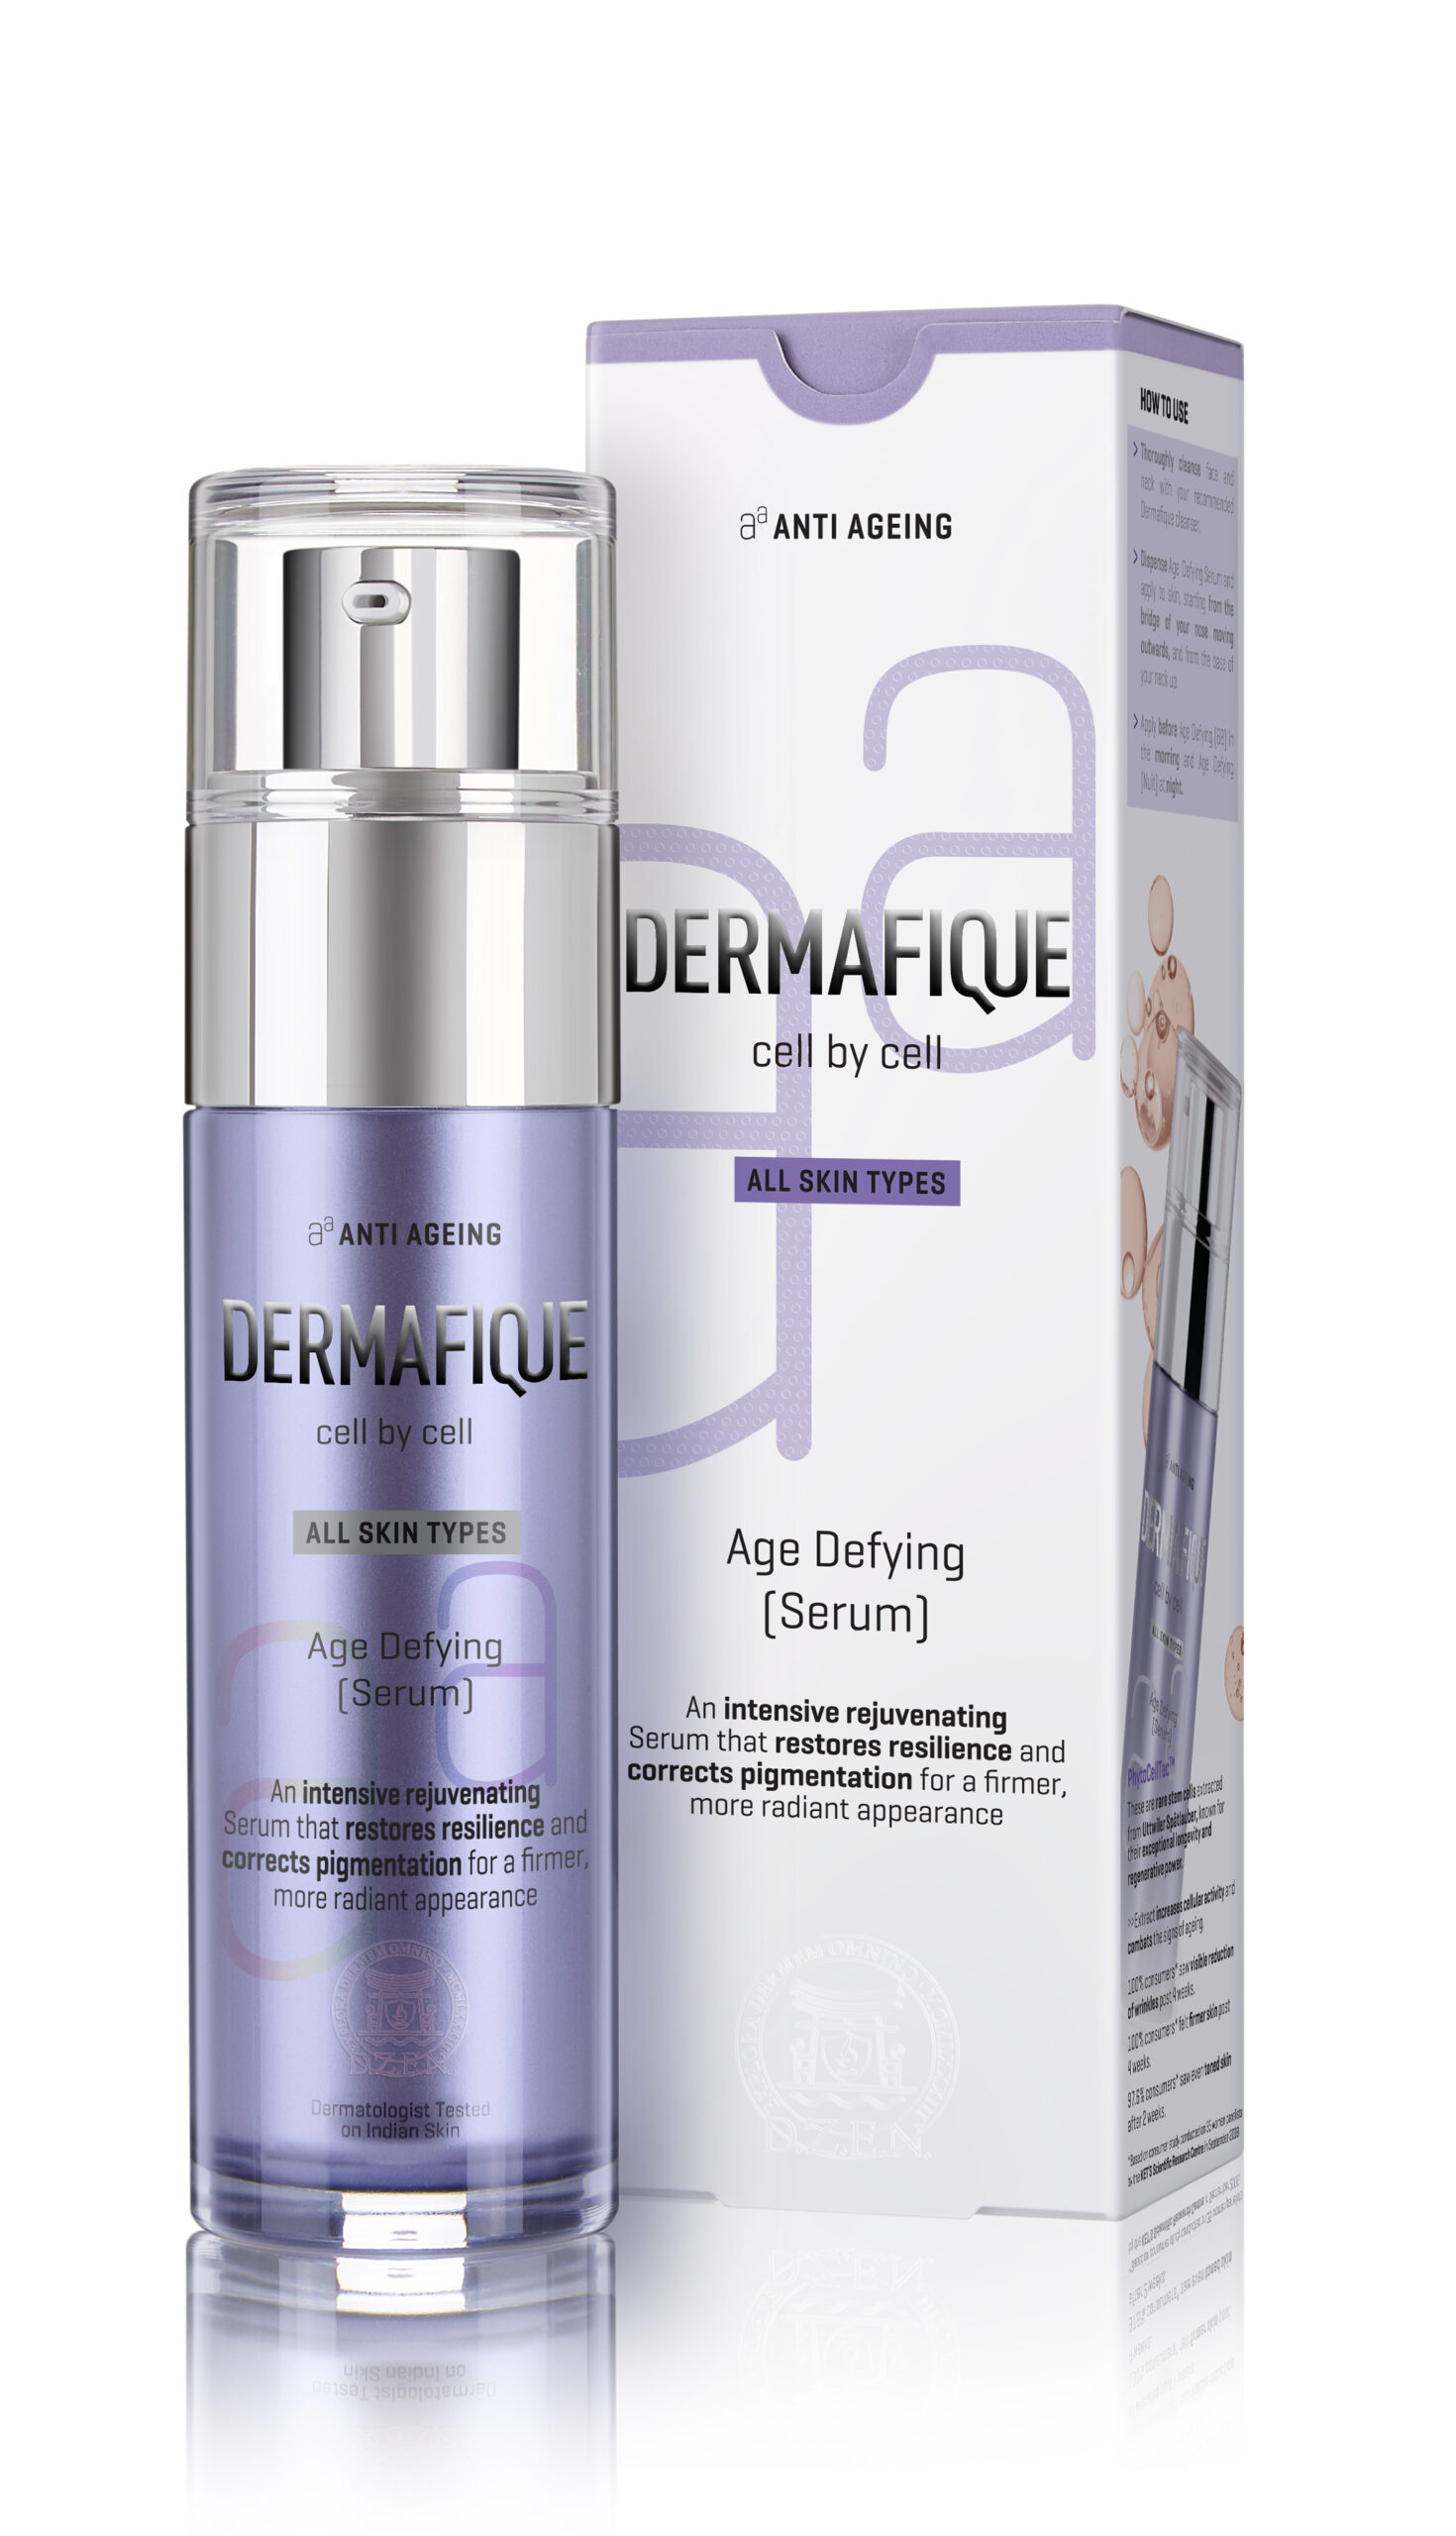 Anti-Aging Products That Work